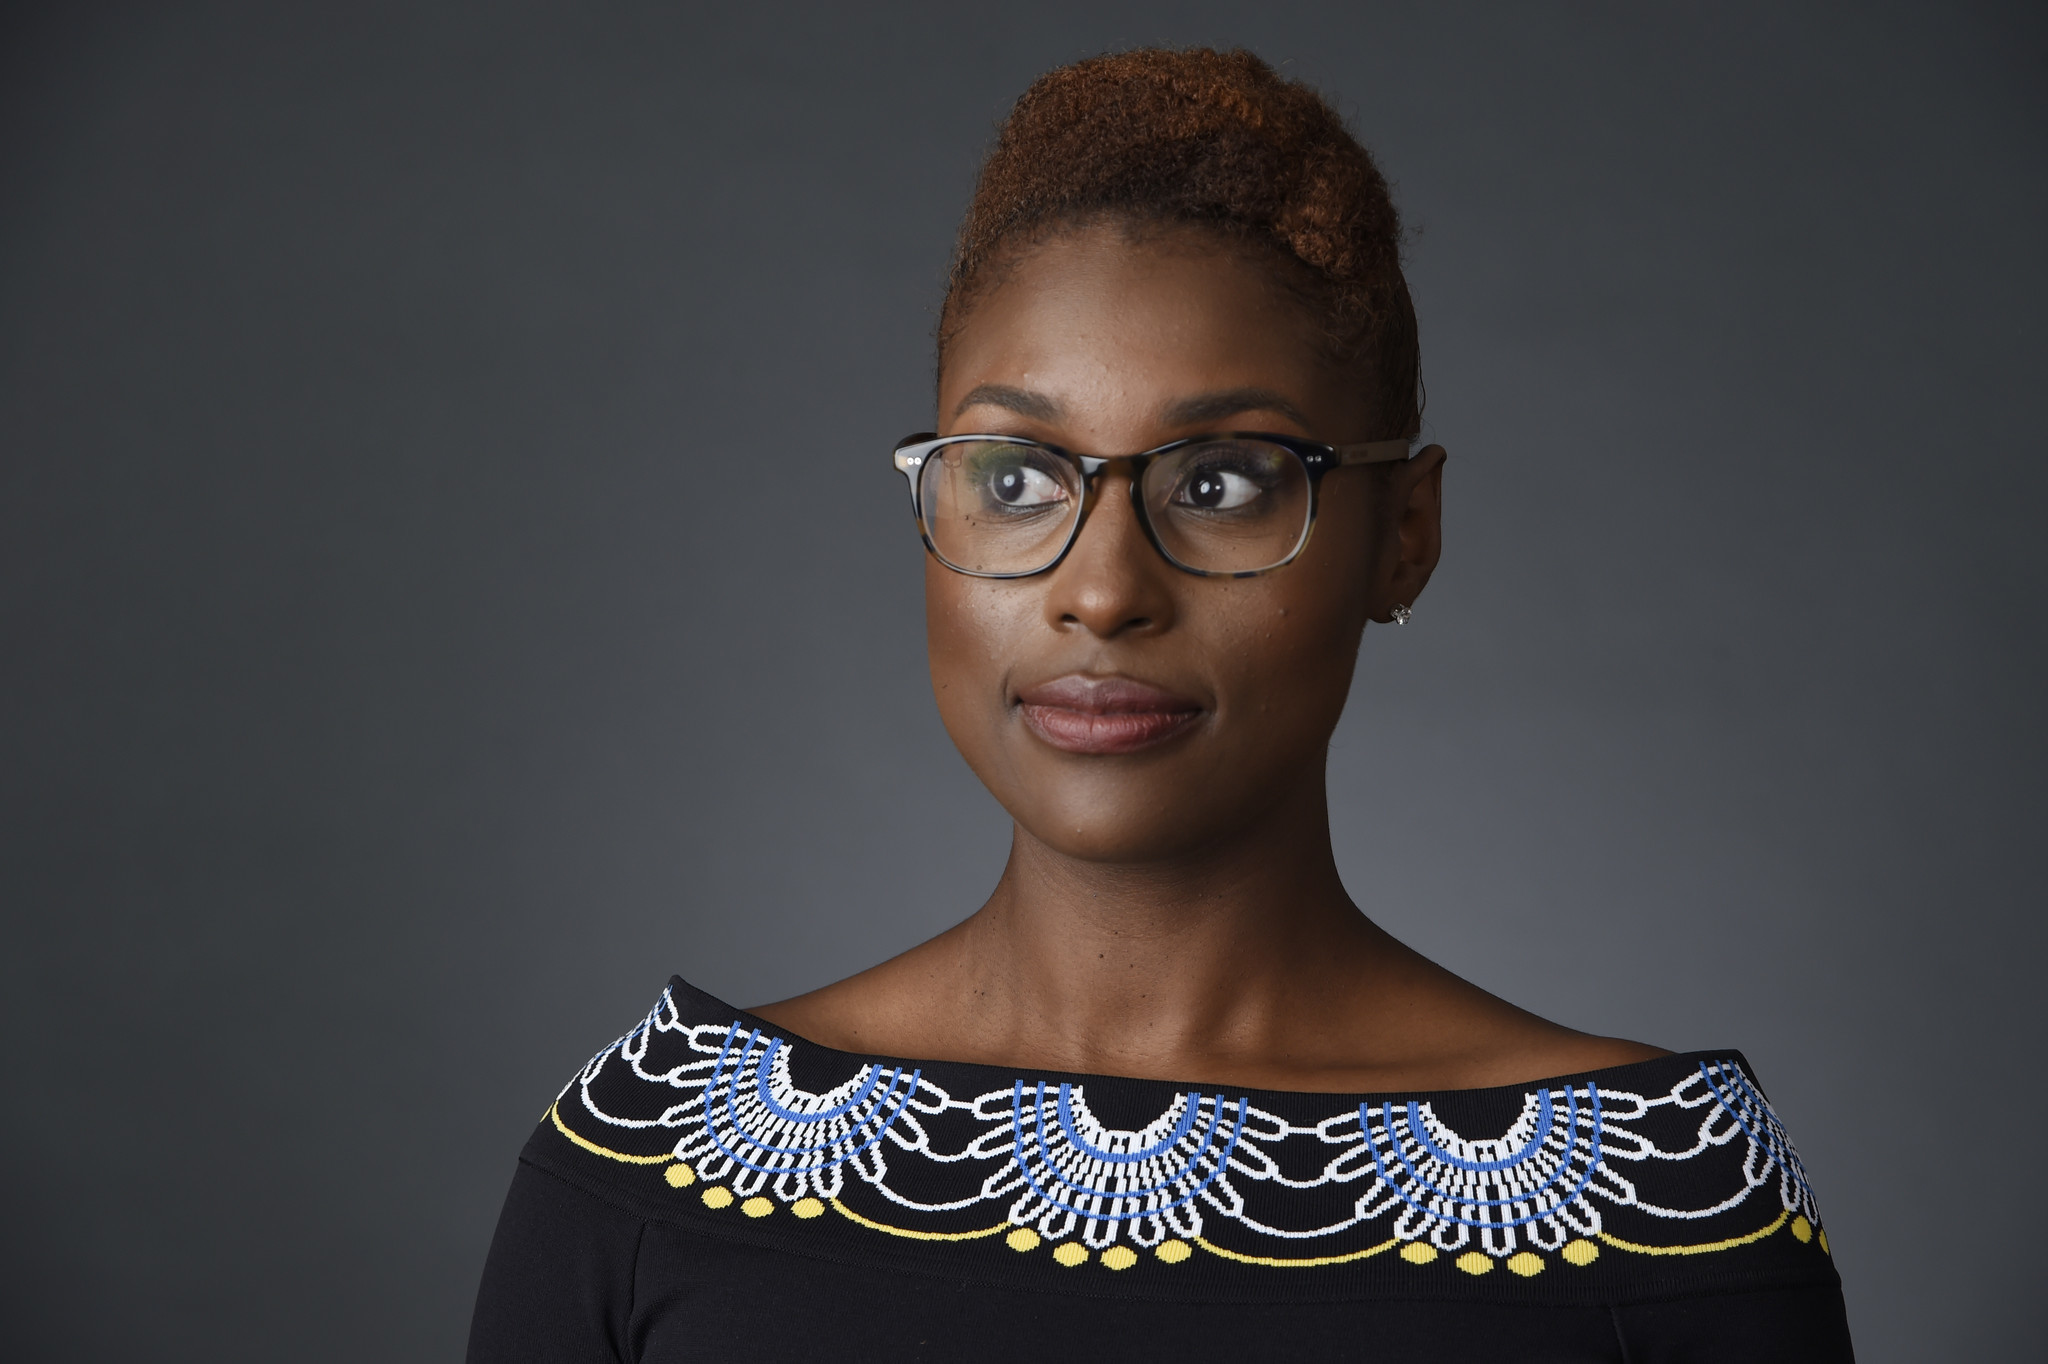 Issa rae takes hbo from white girls to black women with insecure la times